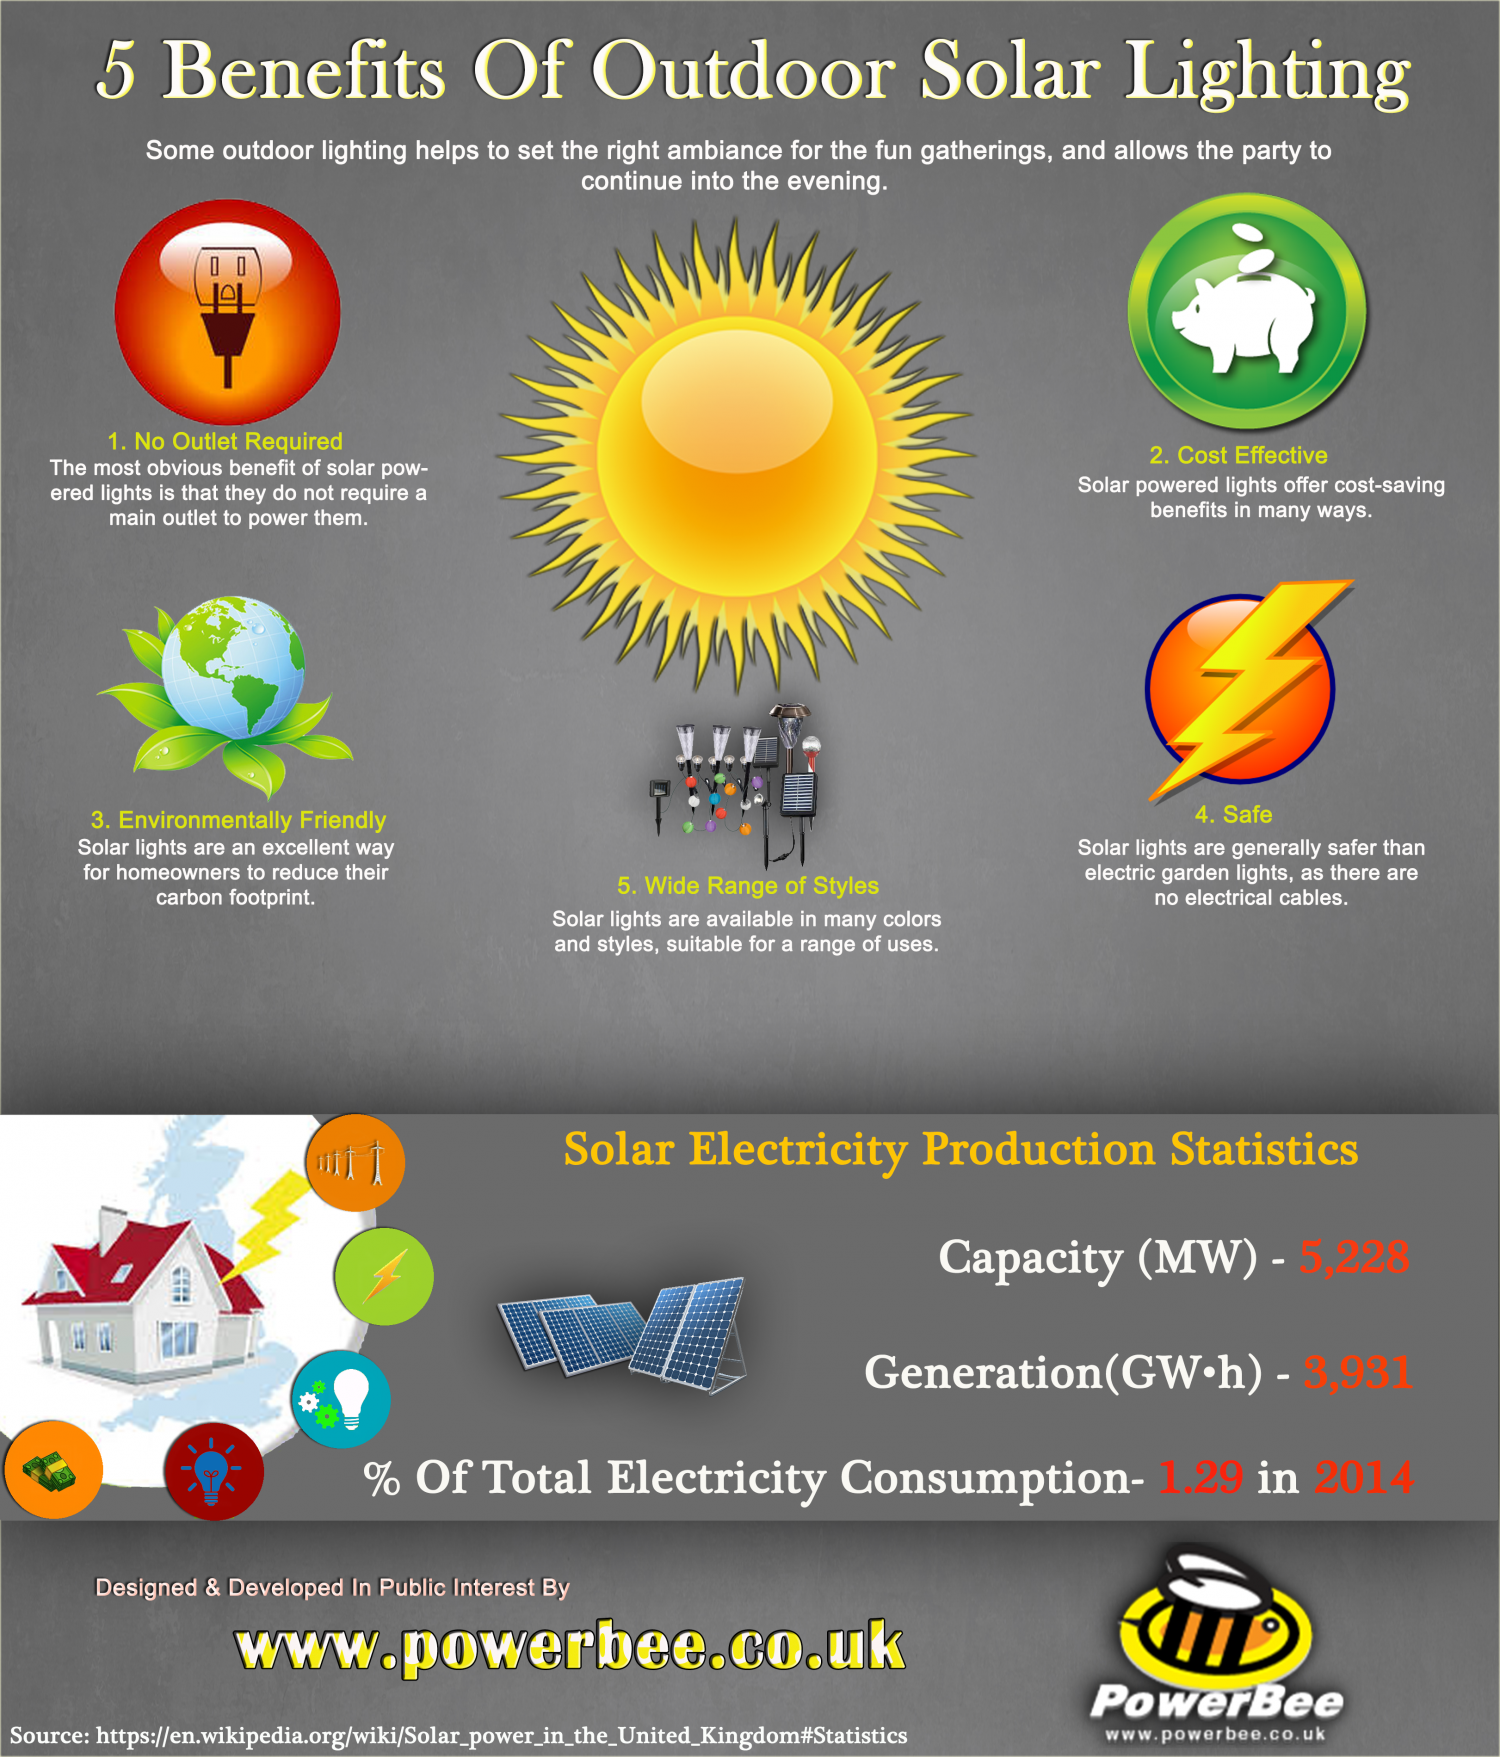 5 Benefits of Outdoor Solar Lighting Infographic